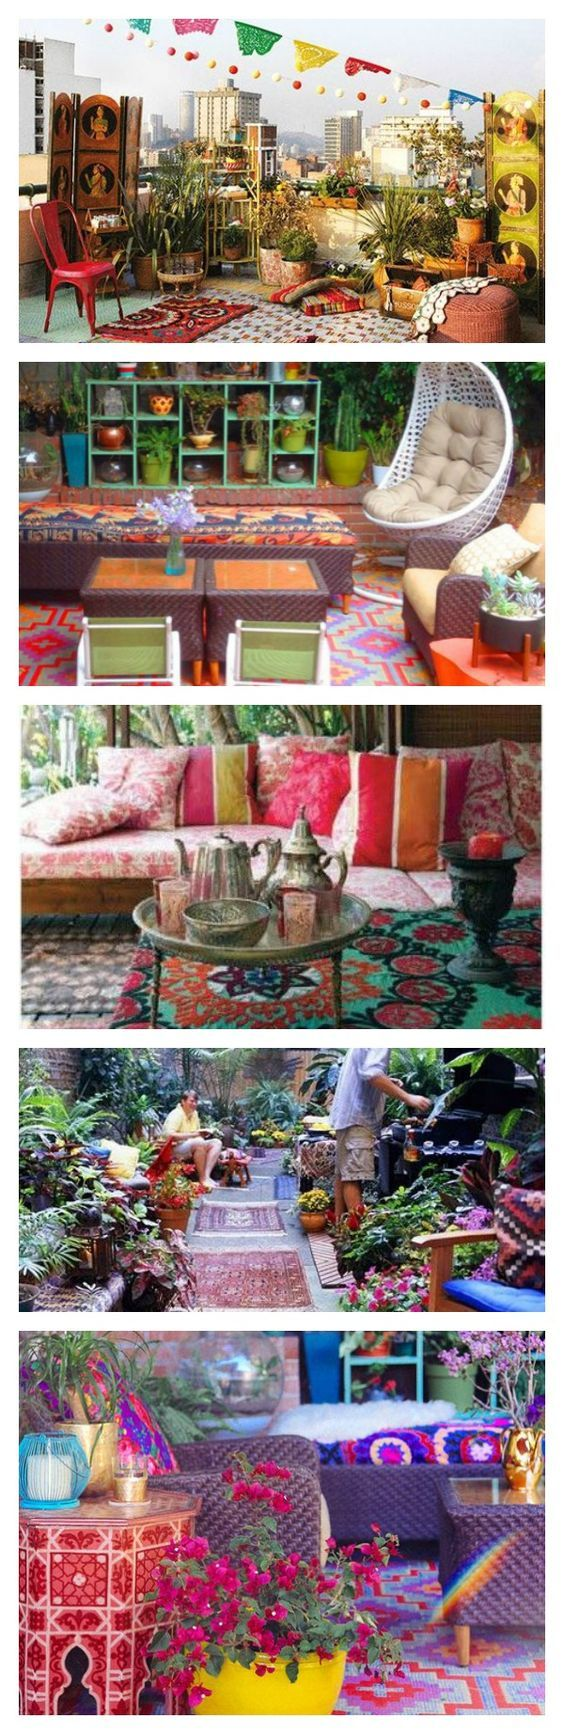 decor hacks colorful bohemian outdoor spaces how to